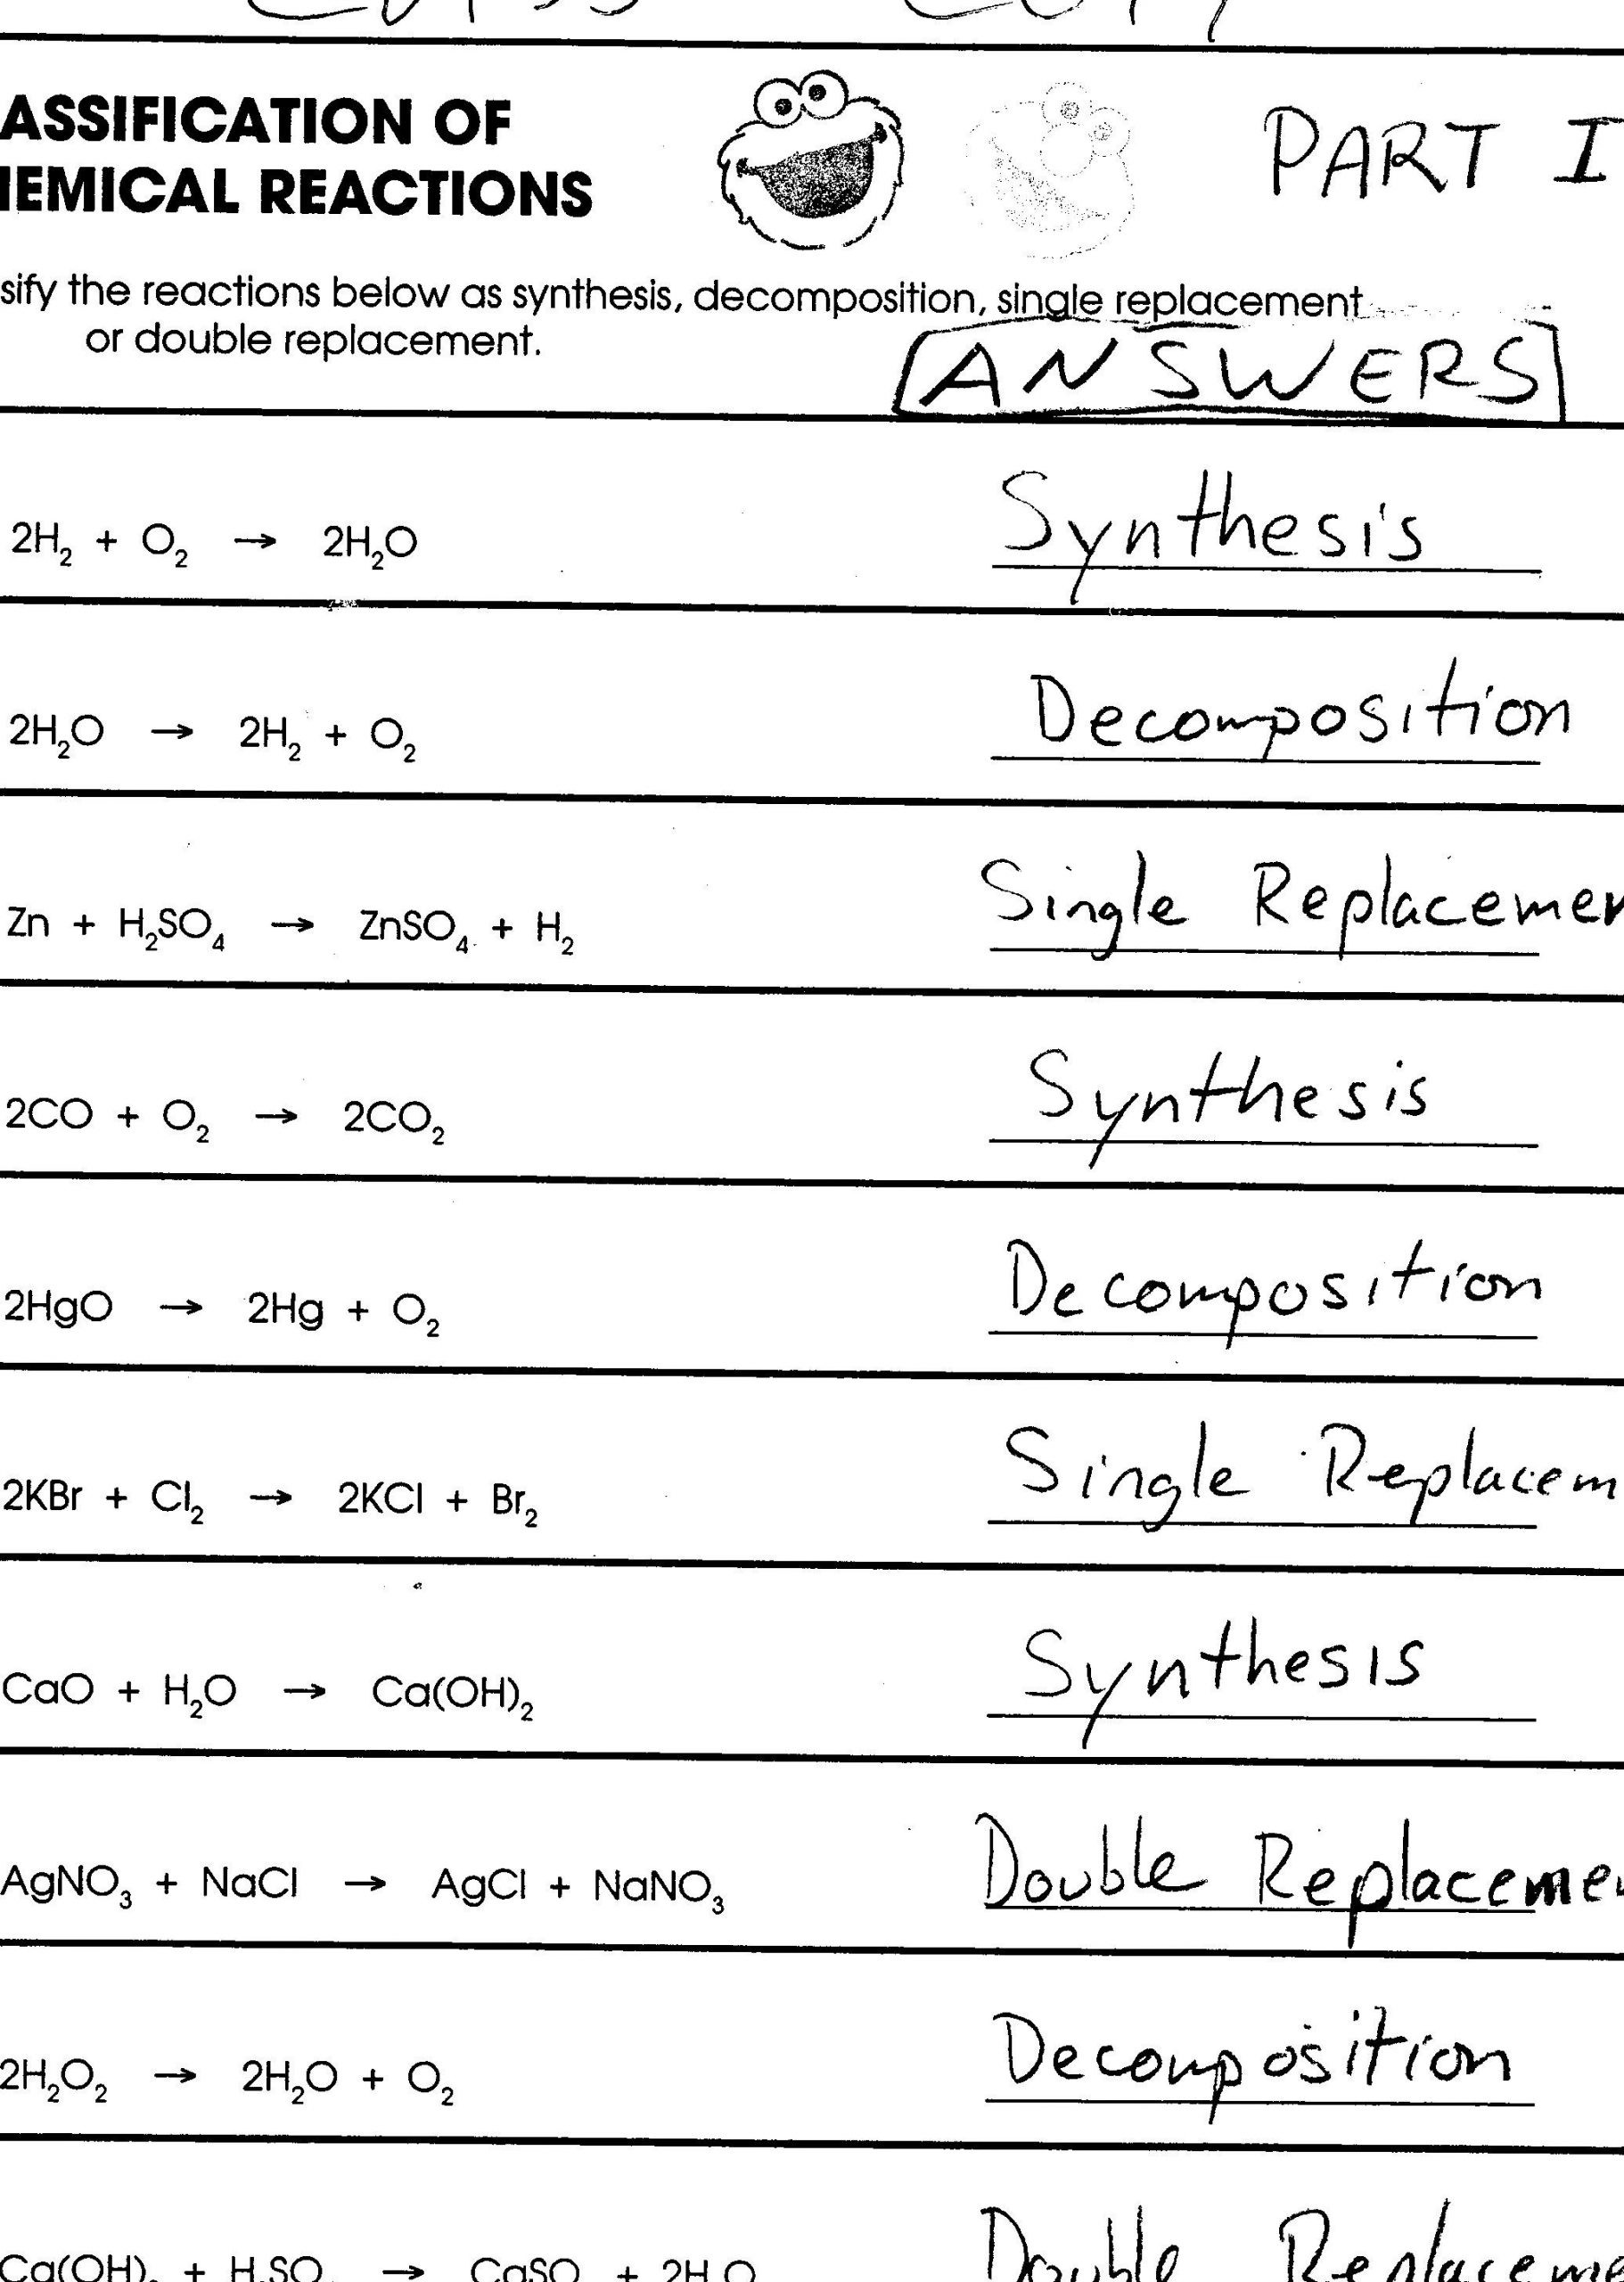 Classification Of Chemical Reactions Worksheet 10 Classifying Chemical Reactions Worksheet Answers